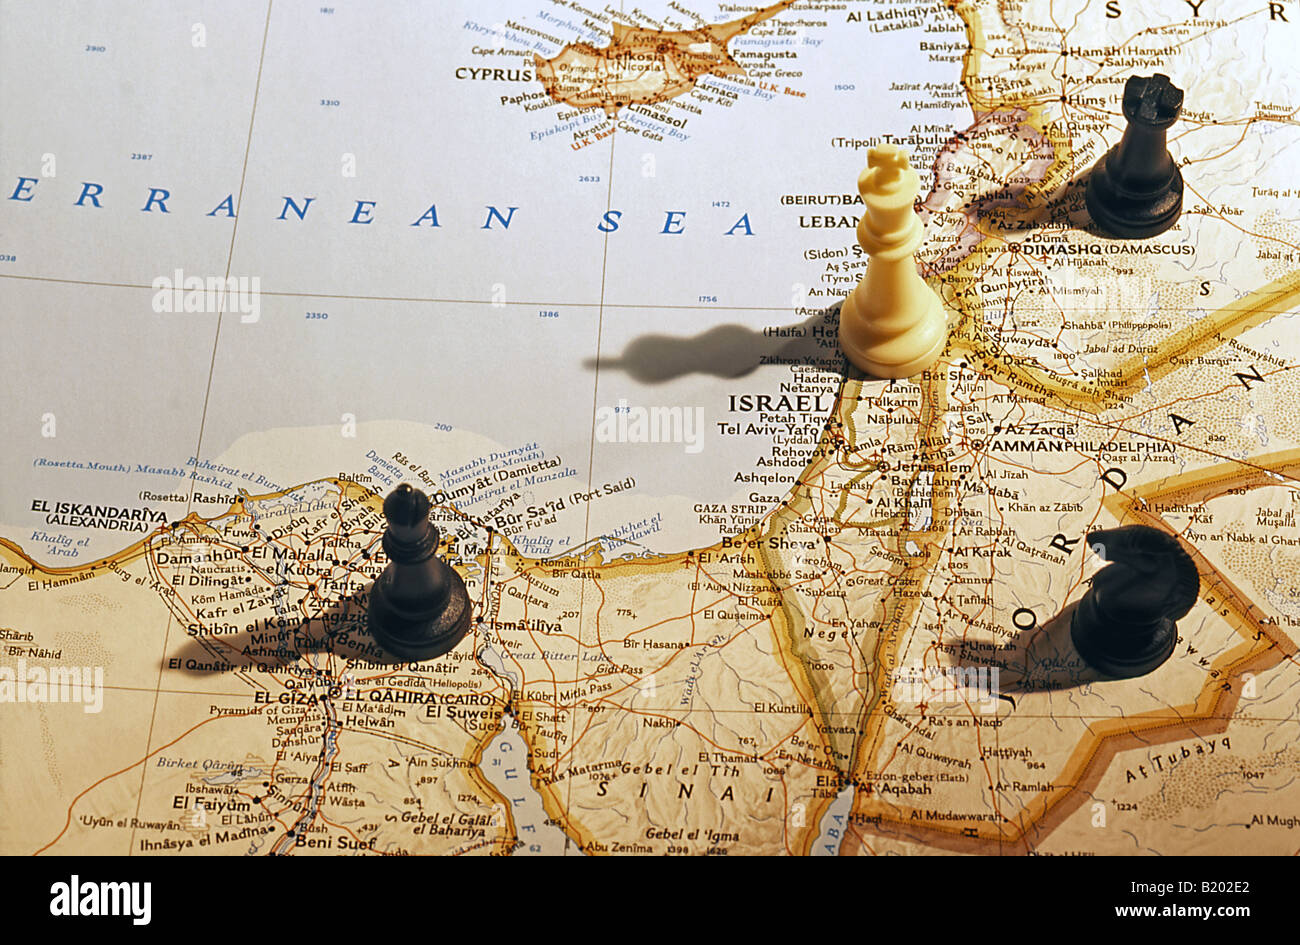 Chess pieces on map of israel egypt jordan and syria stock photo chess pieces on map of israel egypt jordan and syria gumiabroncs Images